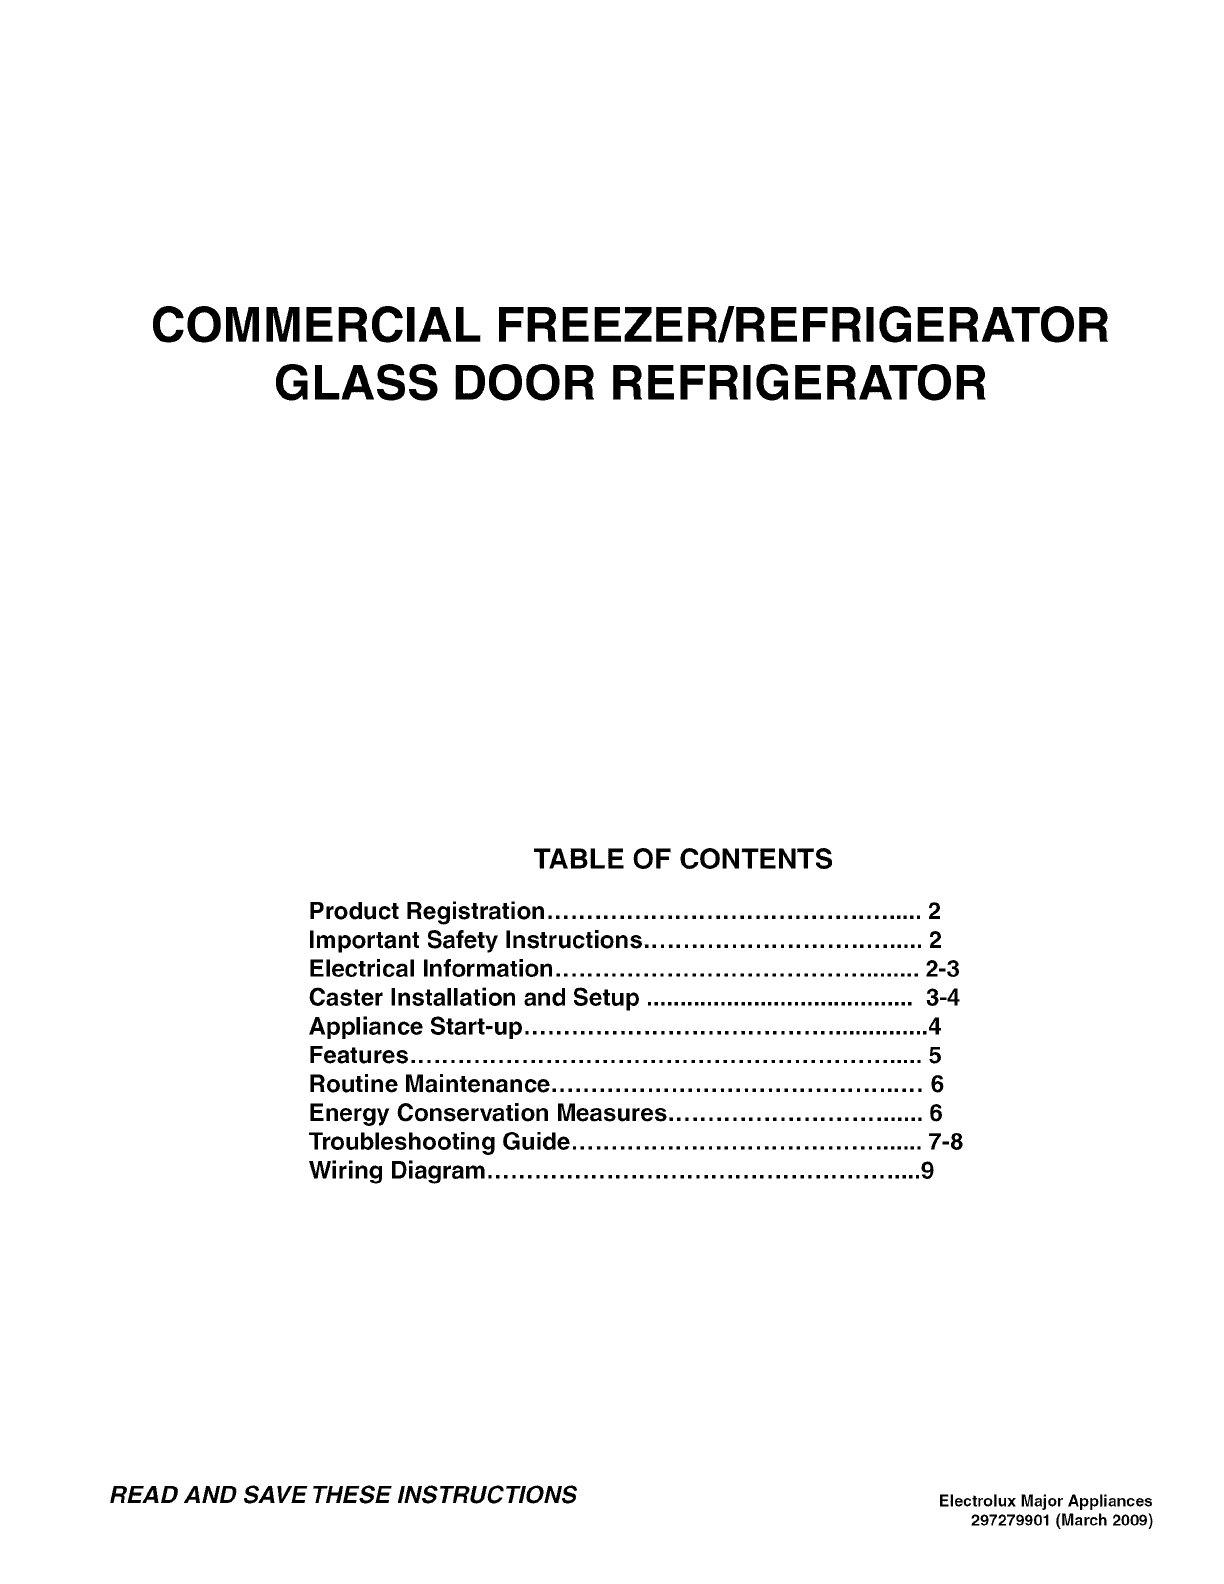 Kelvinator KFS220RHY1 User Manual FREEZER Manuals And Guides ... on